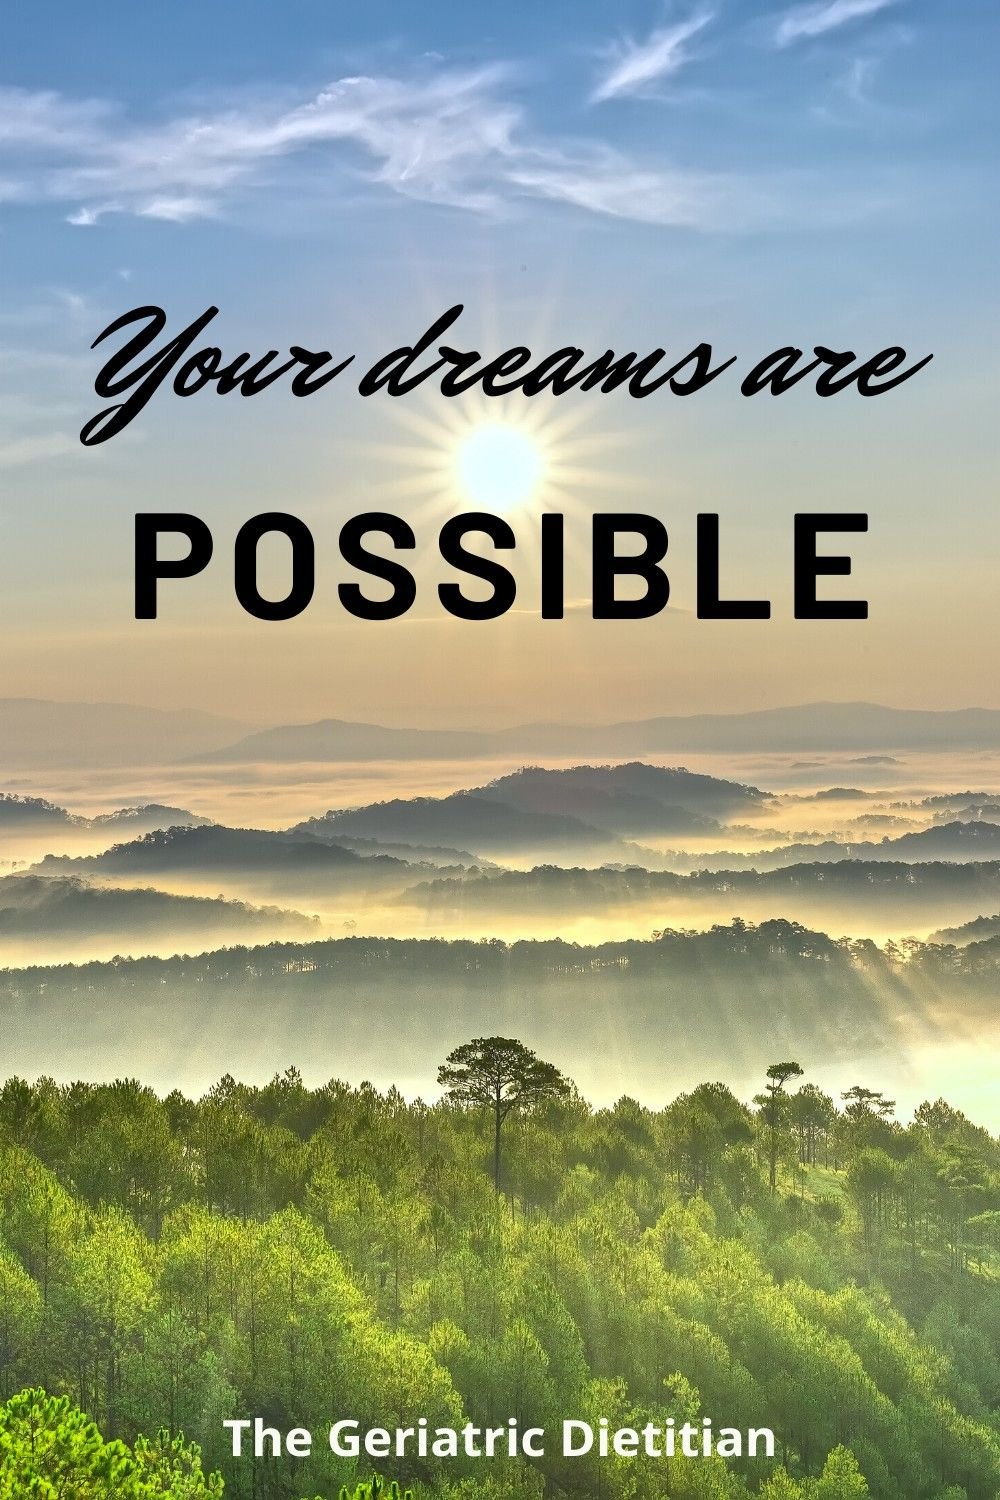 Inspirational quotes: Your dreams are possible. #inspirationalquotes #inspiration #inspirational #quotes #geriatricdietitian #geriatrics #caregivers #elderlycare #caregivertips #grateful #keepgoing #morningquotes #dreams #possible